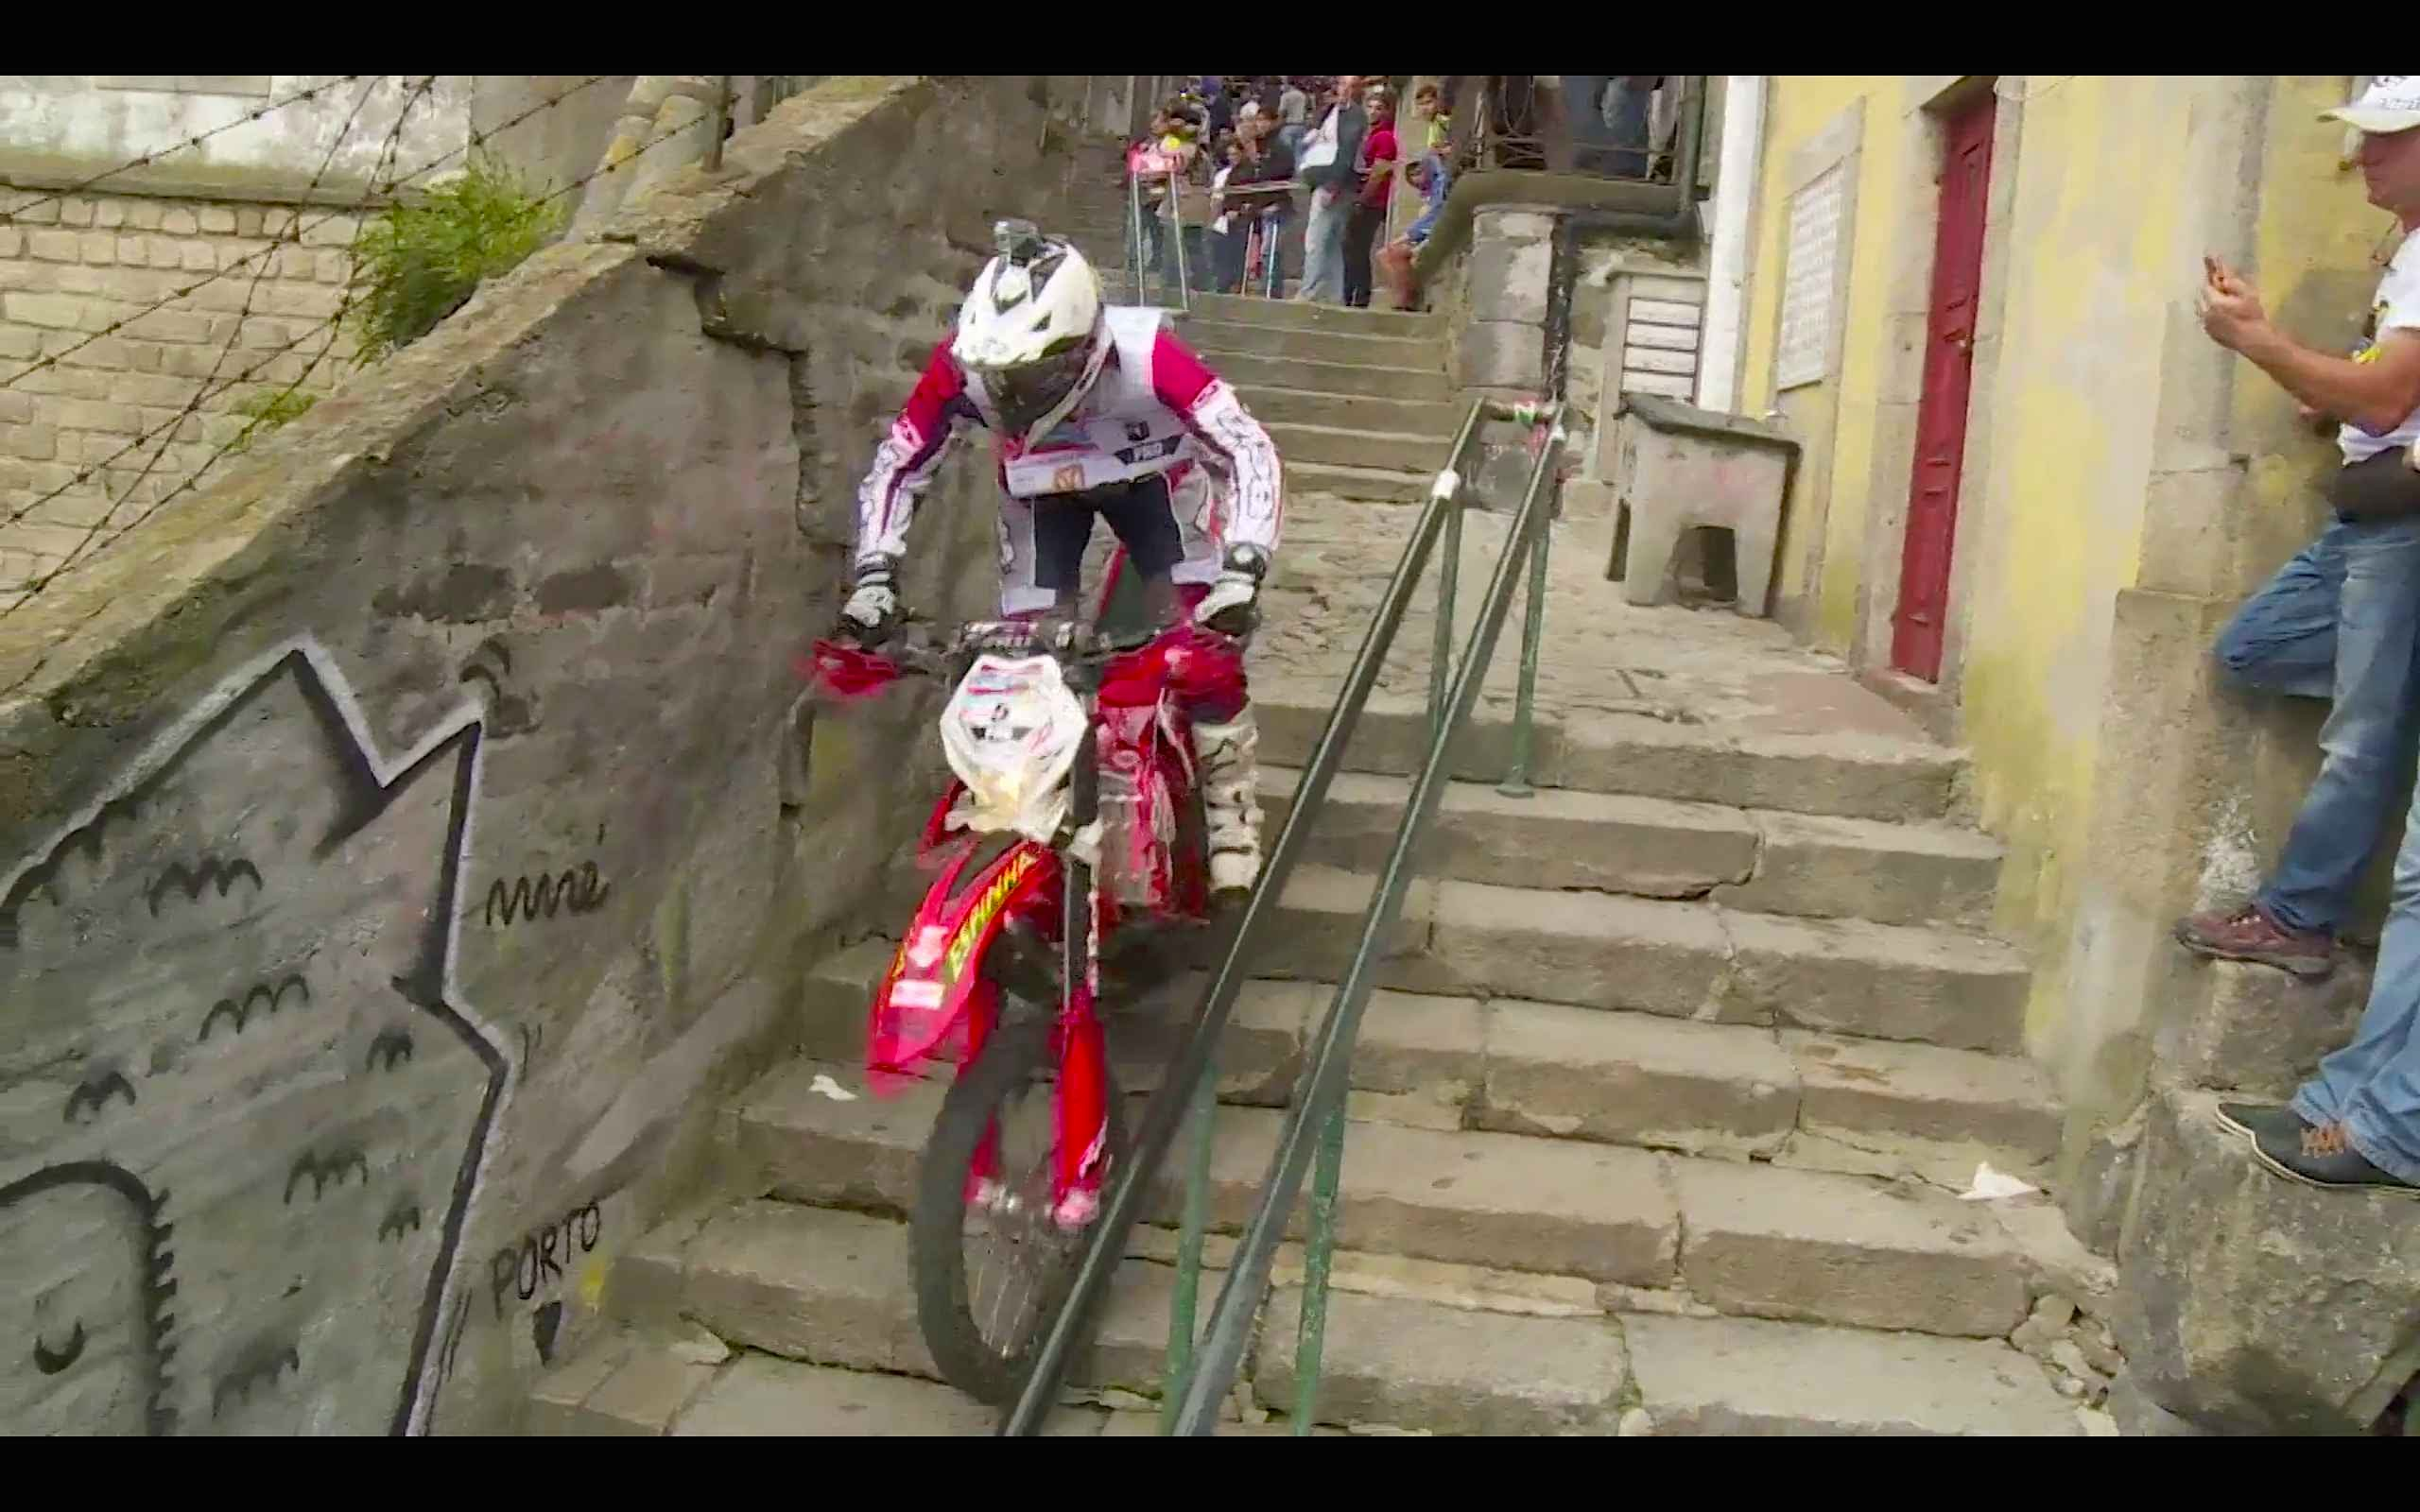 redbull-hard-enduro-racing-through-the-city